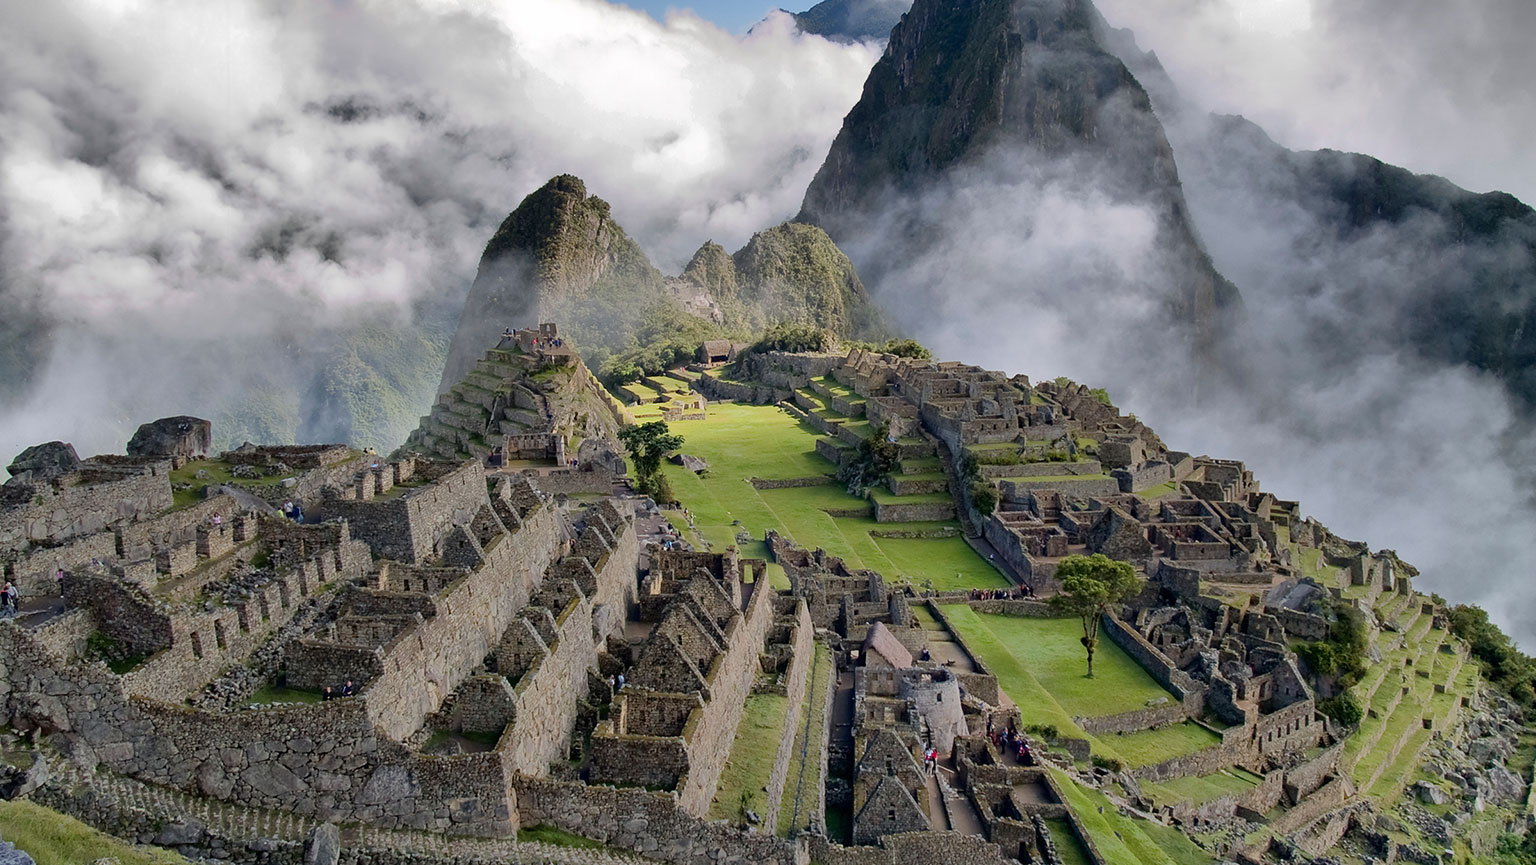 The Inca—Gifts of the Empire